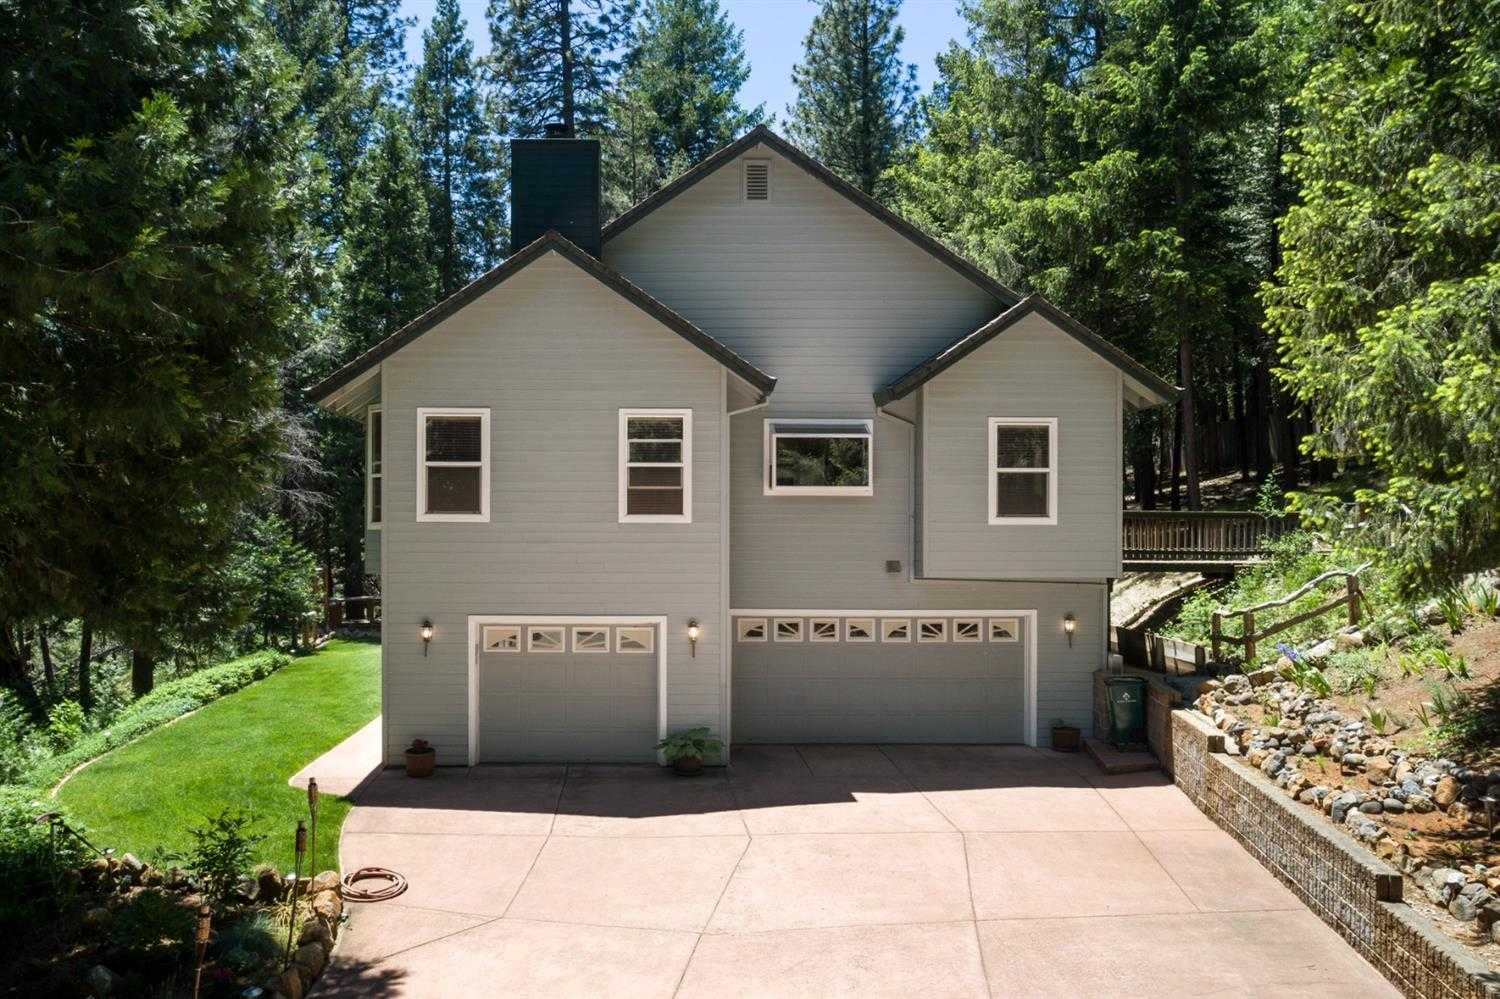 $799,900 - 5Br/4Ba -  for Sale in Pollock Pines